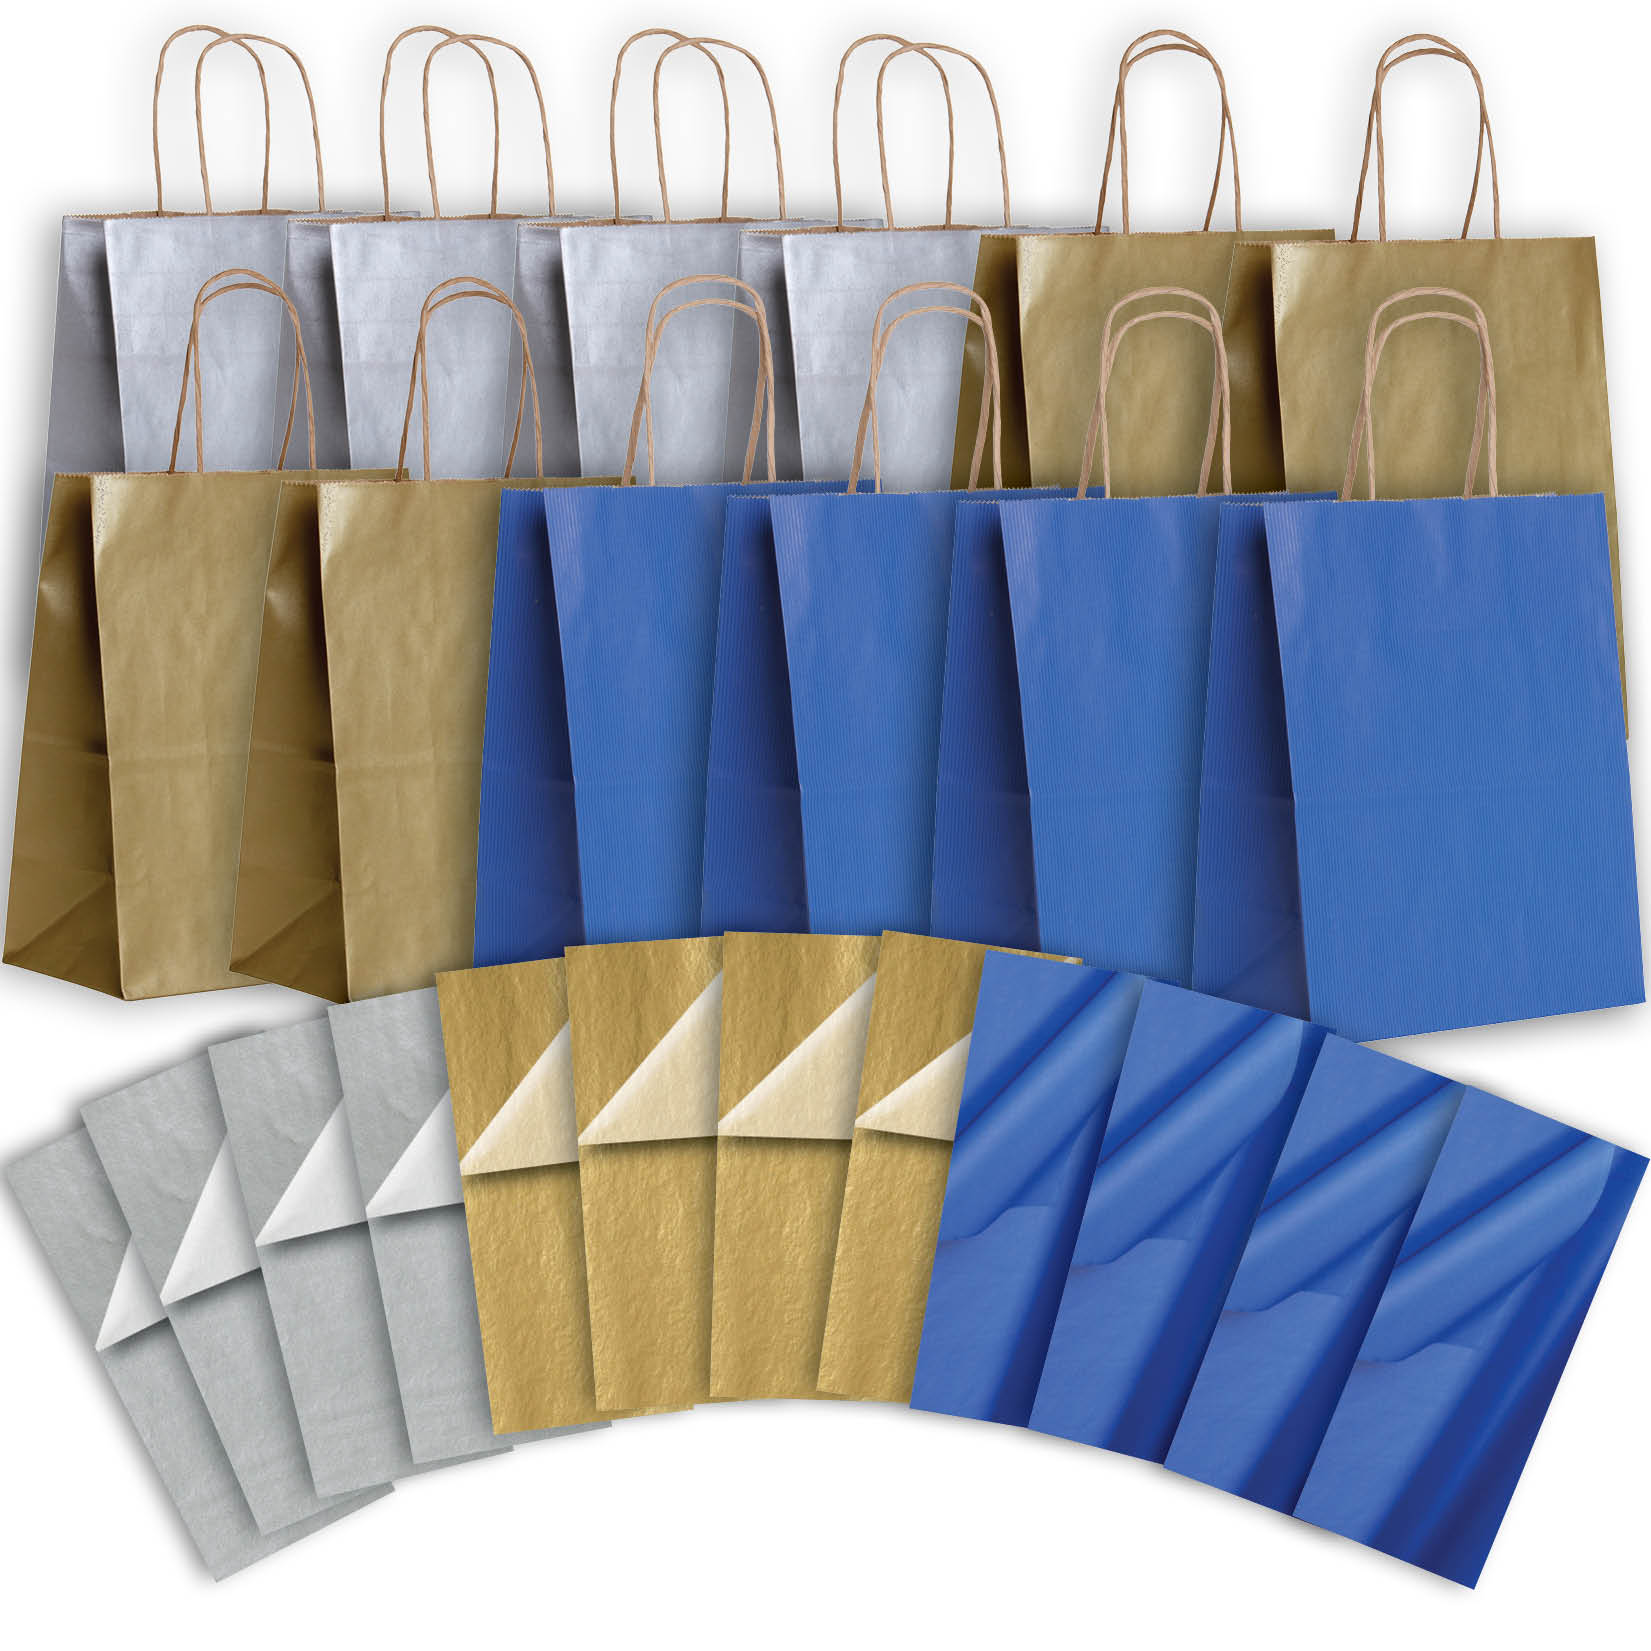 Jillson & Roberts Eco-Friendly Kraft Medium Gift Bag & Tissue Assortment, Hanukkah (12 Bags)